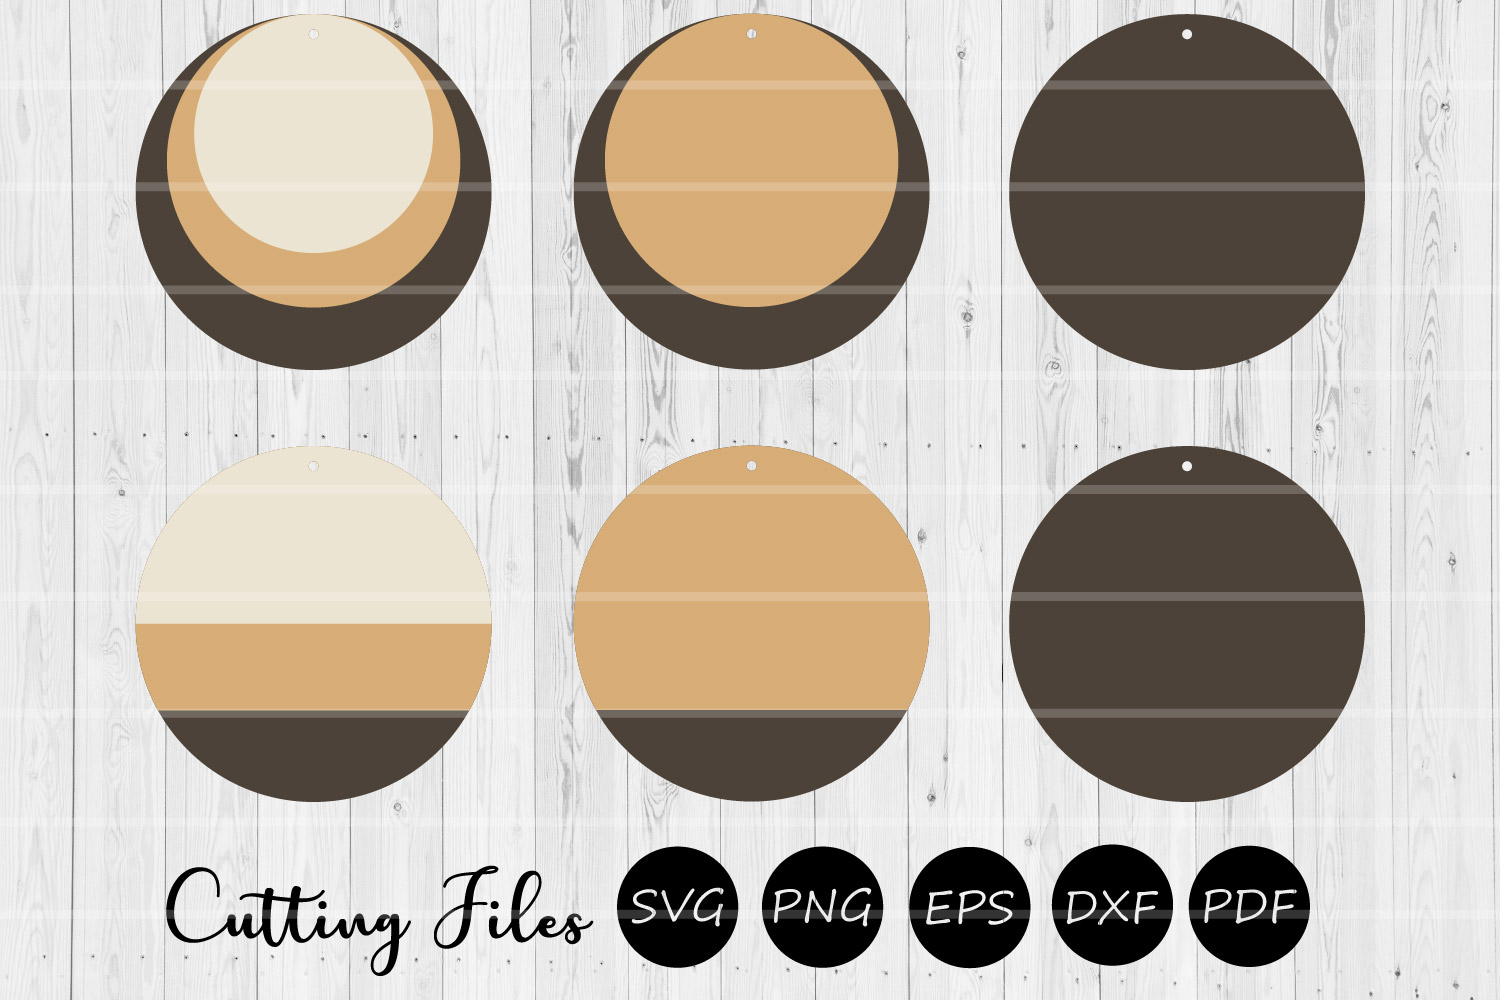 Round Stacked Earrings   SVG cutting files   Commercial use  example image 1